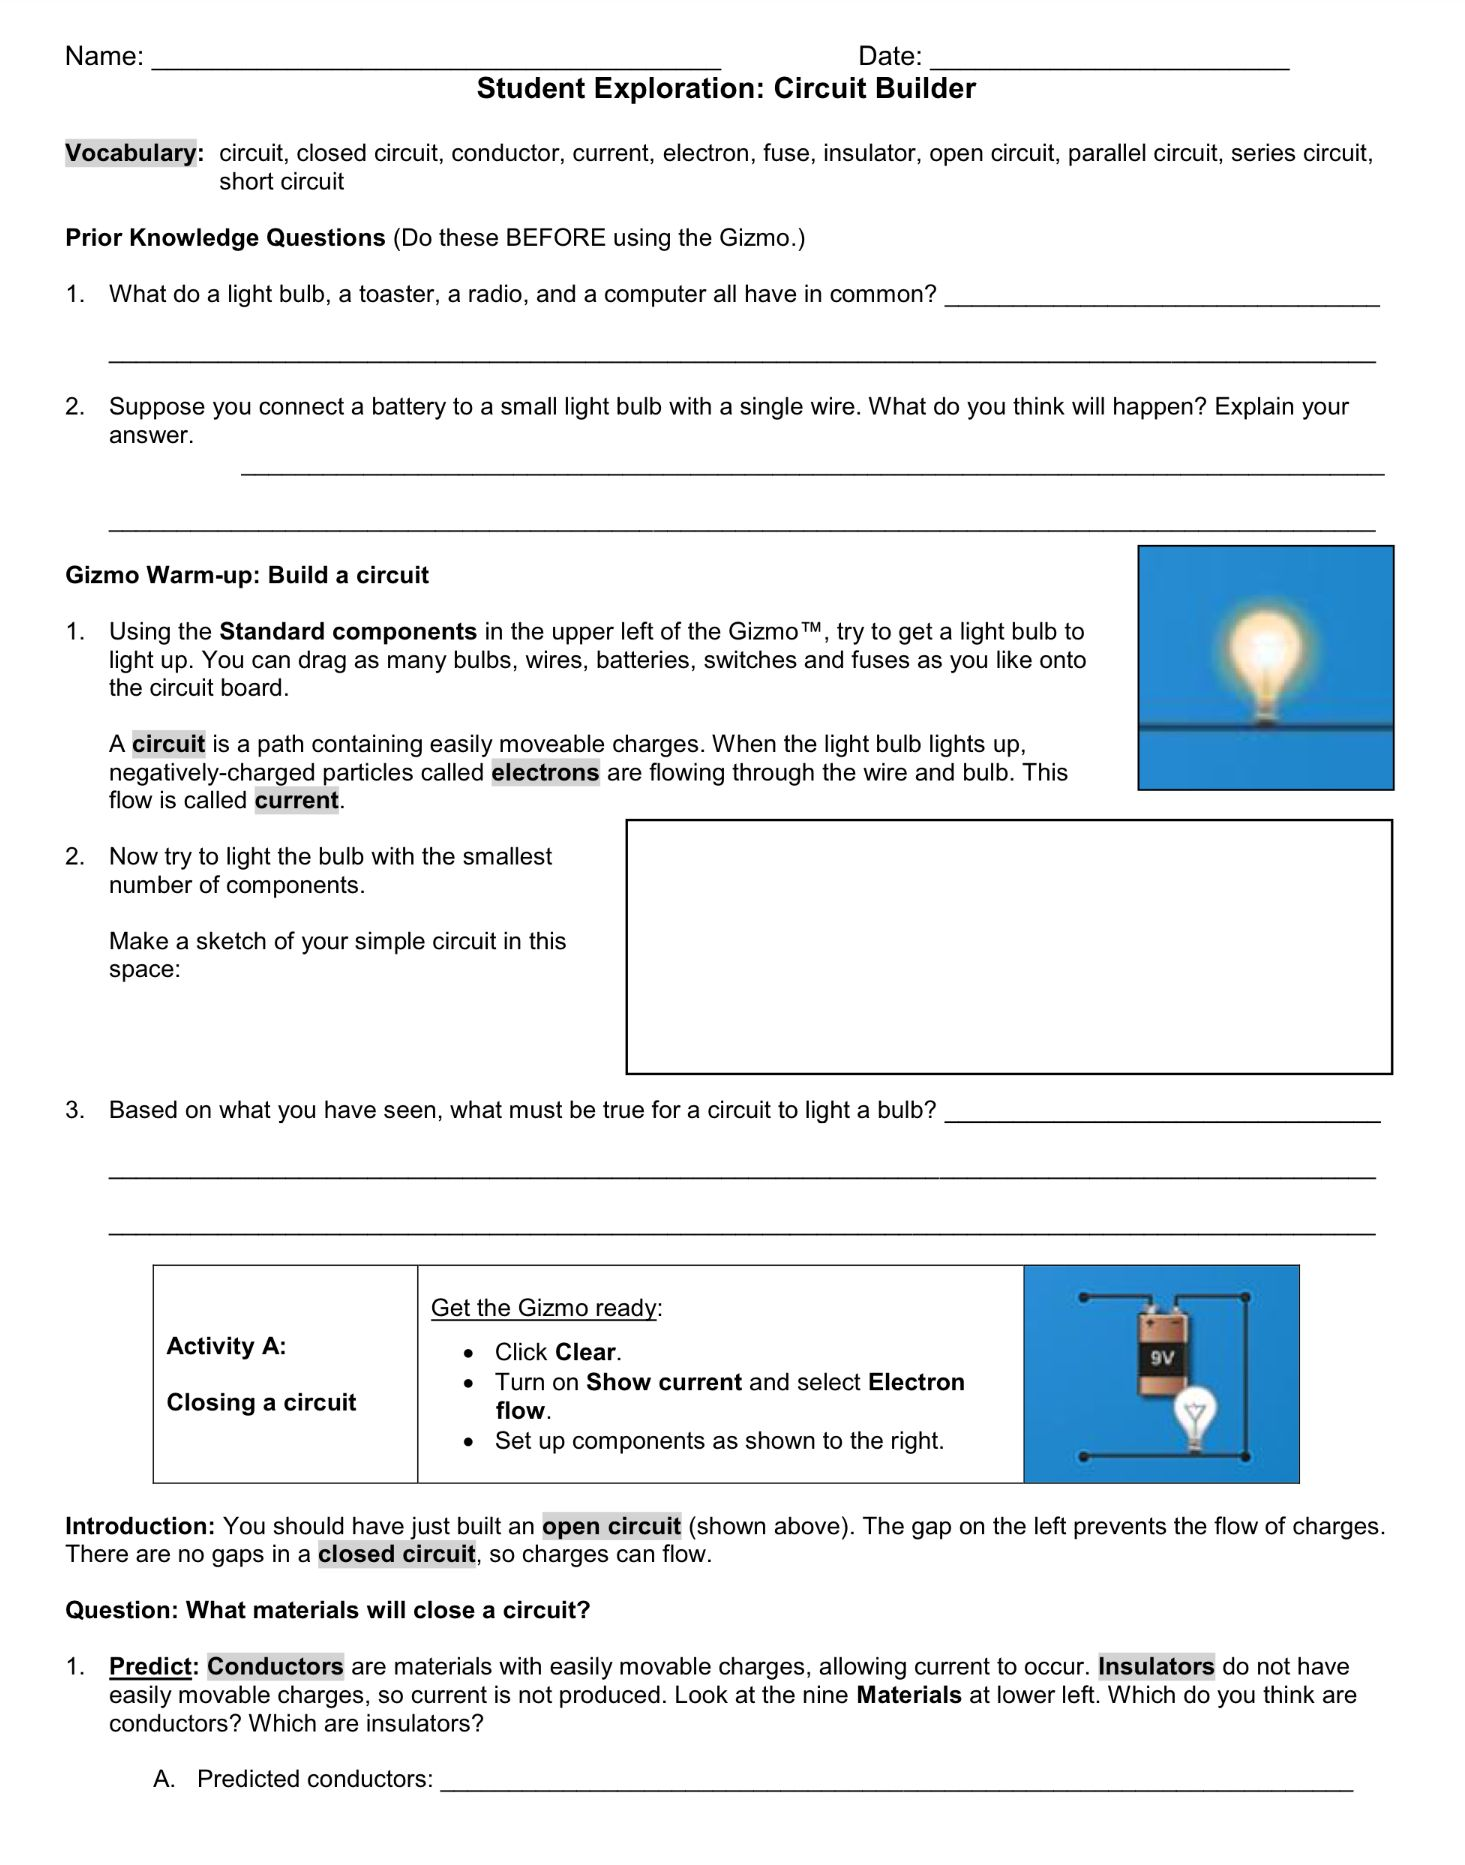 circuit builder student exploration worksheet wednesday february 21 2018 www  [ 1465 x 1865 Pixel ]